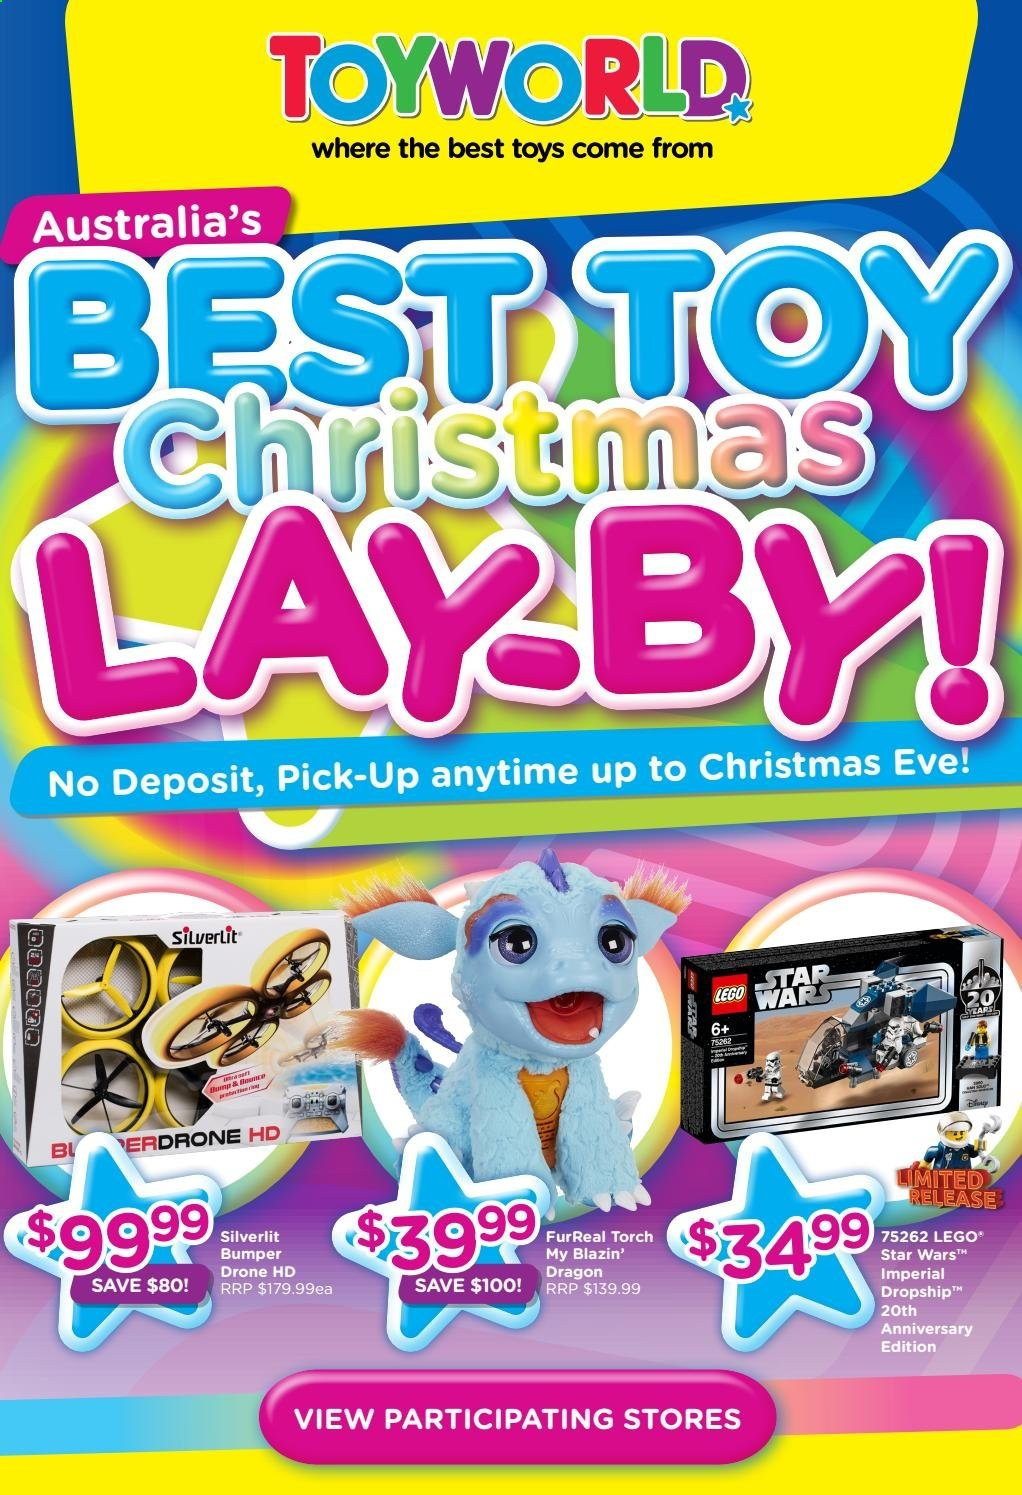 Toyworld catalogue and weekly specials 30 5 2019 - 30 6 2019 | Au